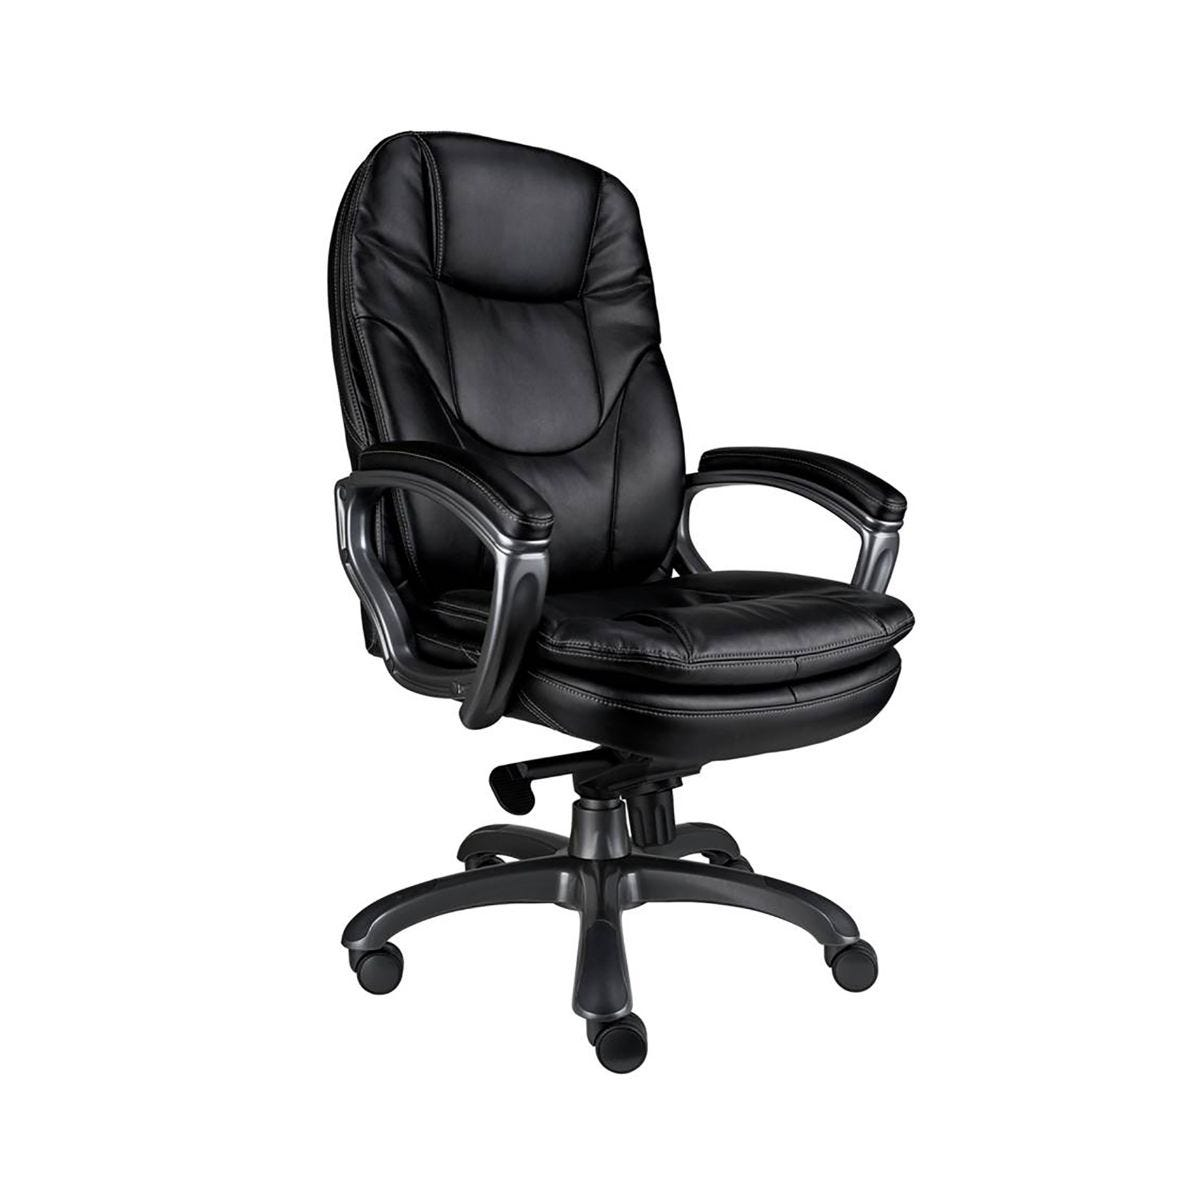 Eliza Tinsley Leather Executive Office Chair Black, Black